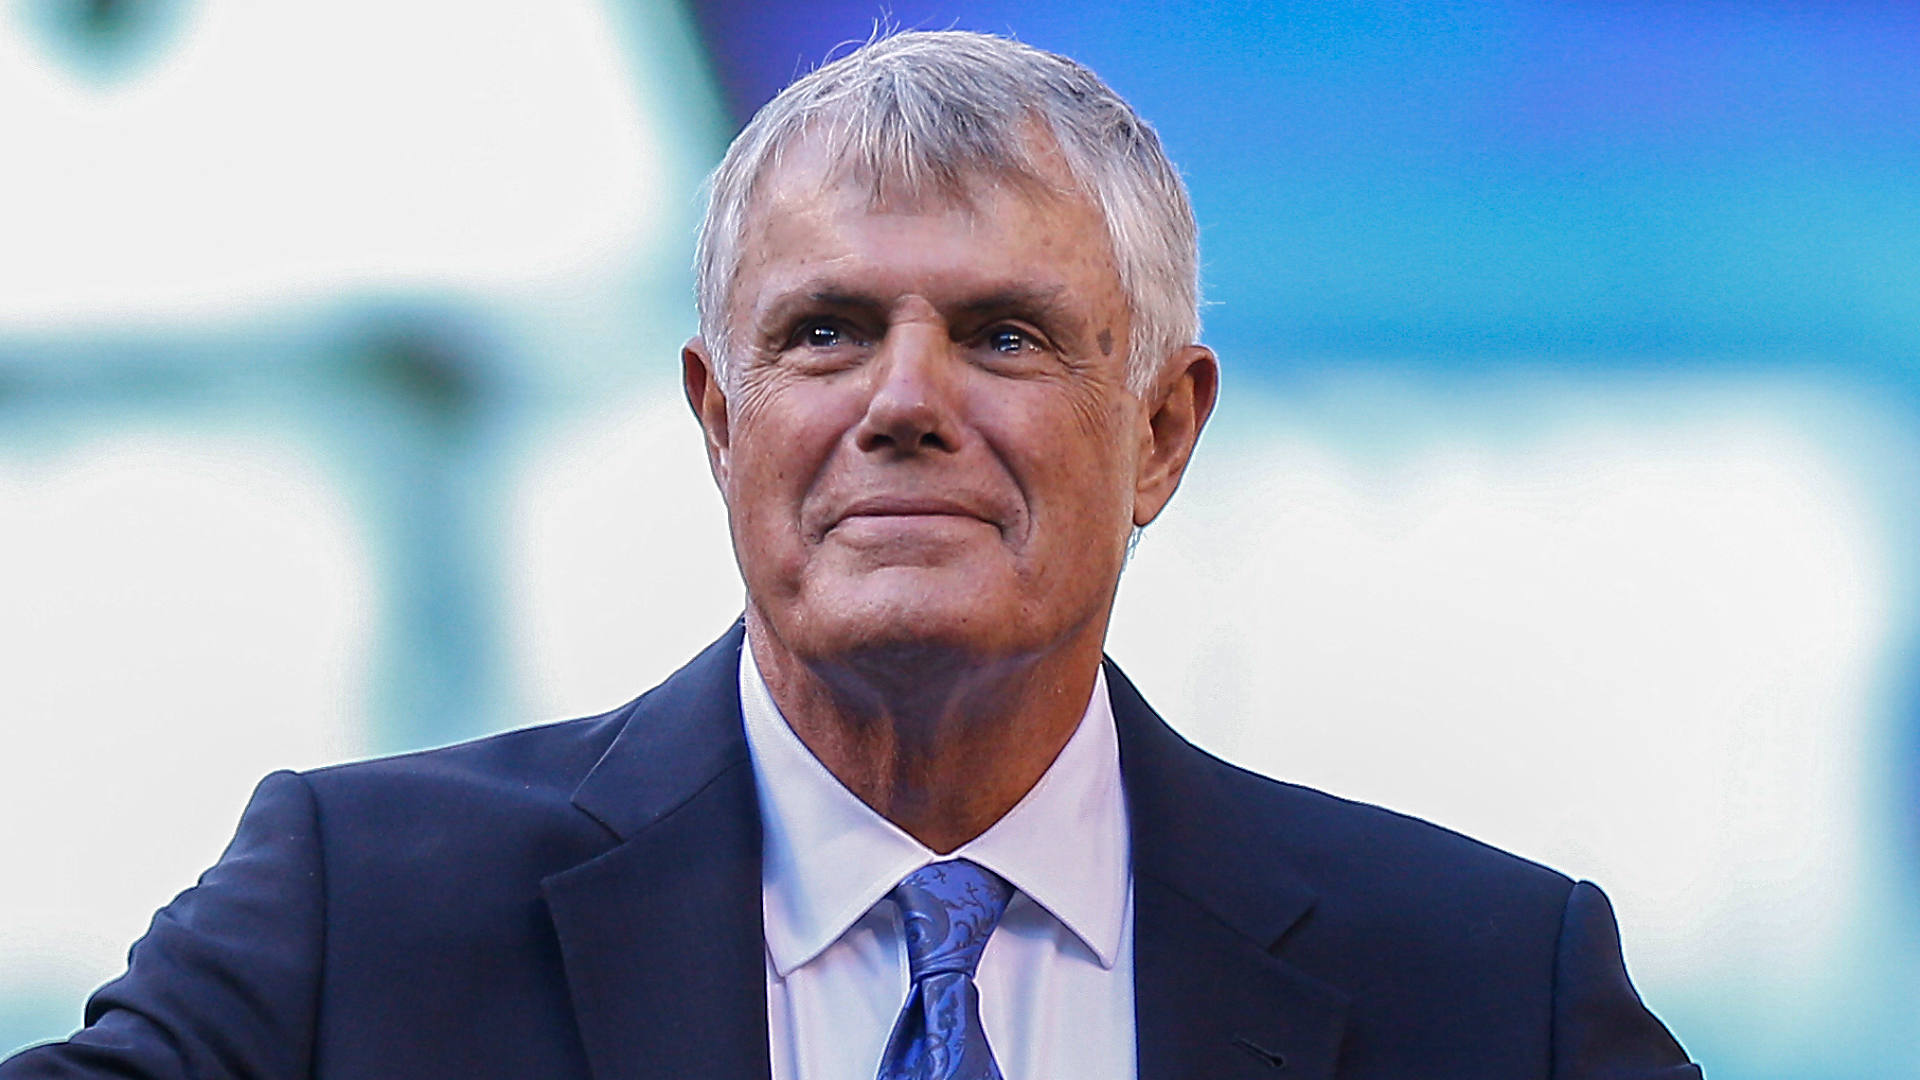 Lou Piniella Net Worth